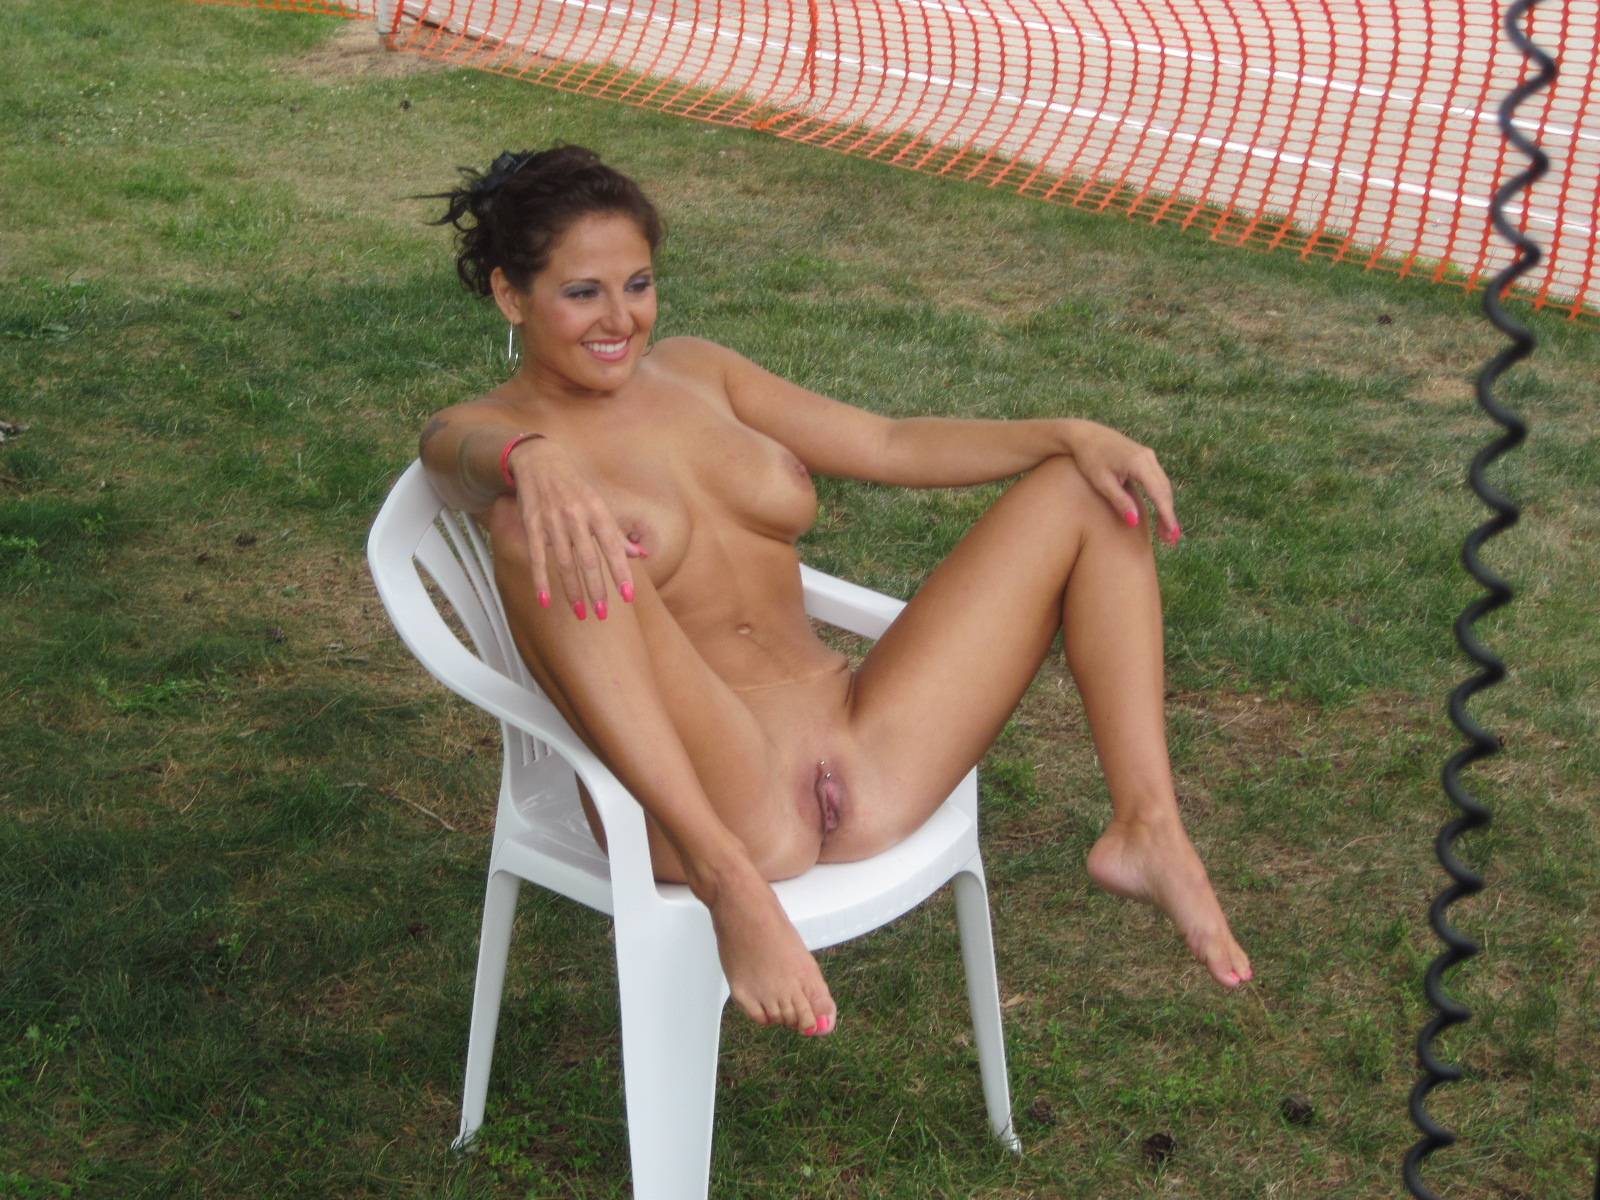 Nude photos woman